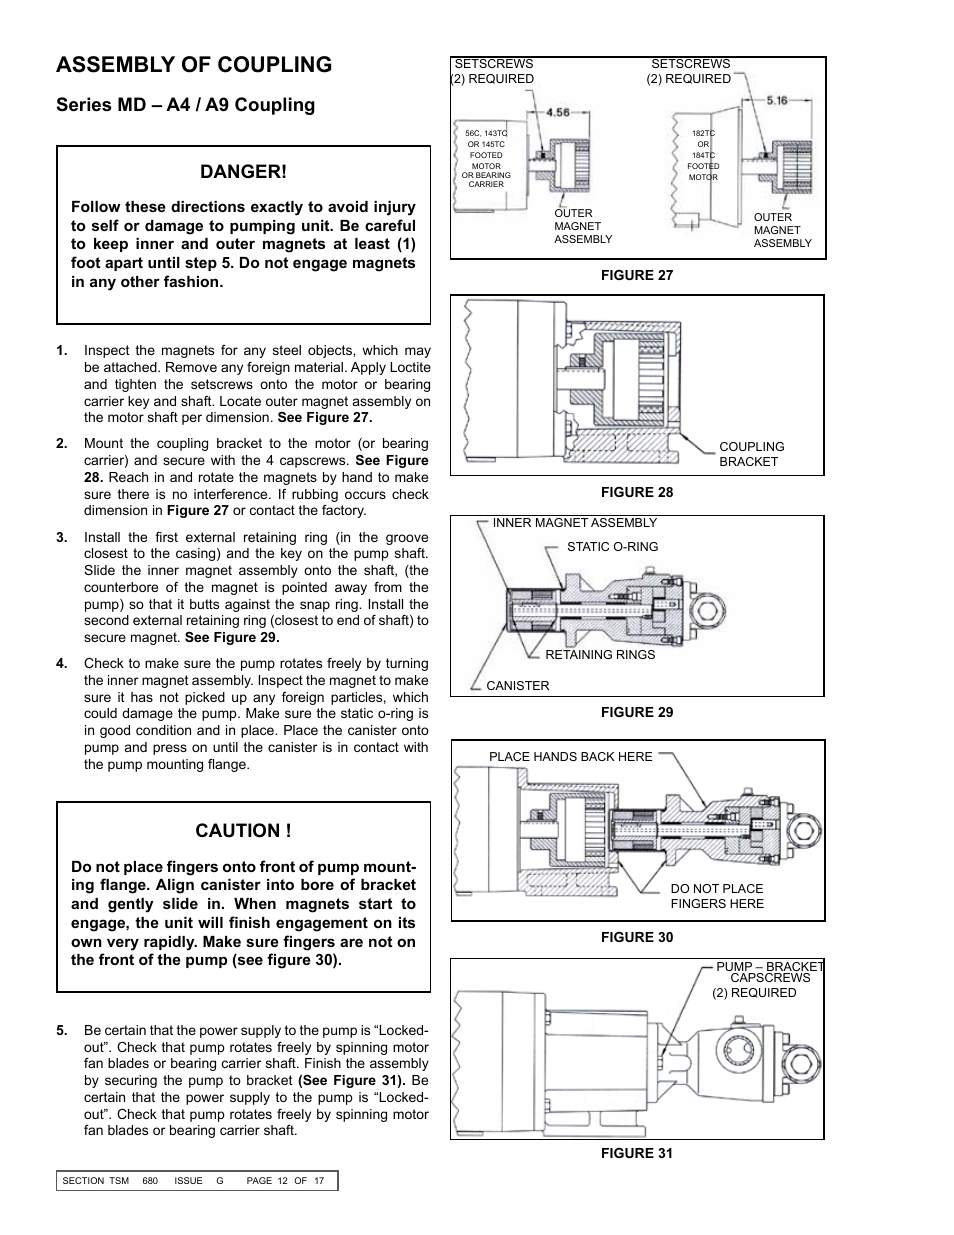 Assembly of coupling, Series md – a4 / a9 coupling danger, Caution | Viking  Pump TSM680: 895, 893 and 897 Mag Drive User Manual | Page 12 / 17